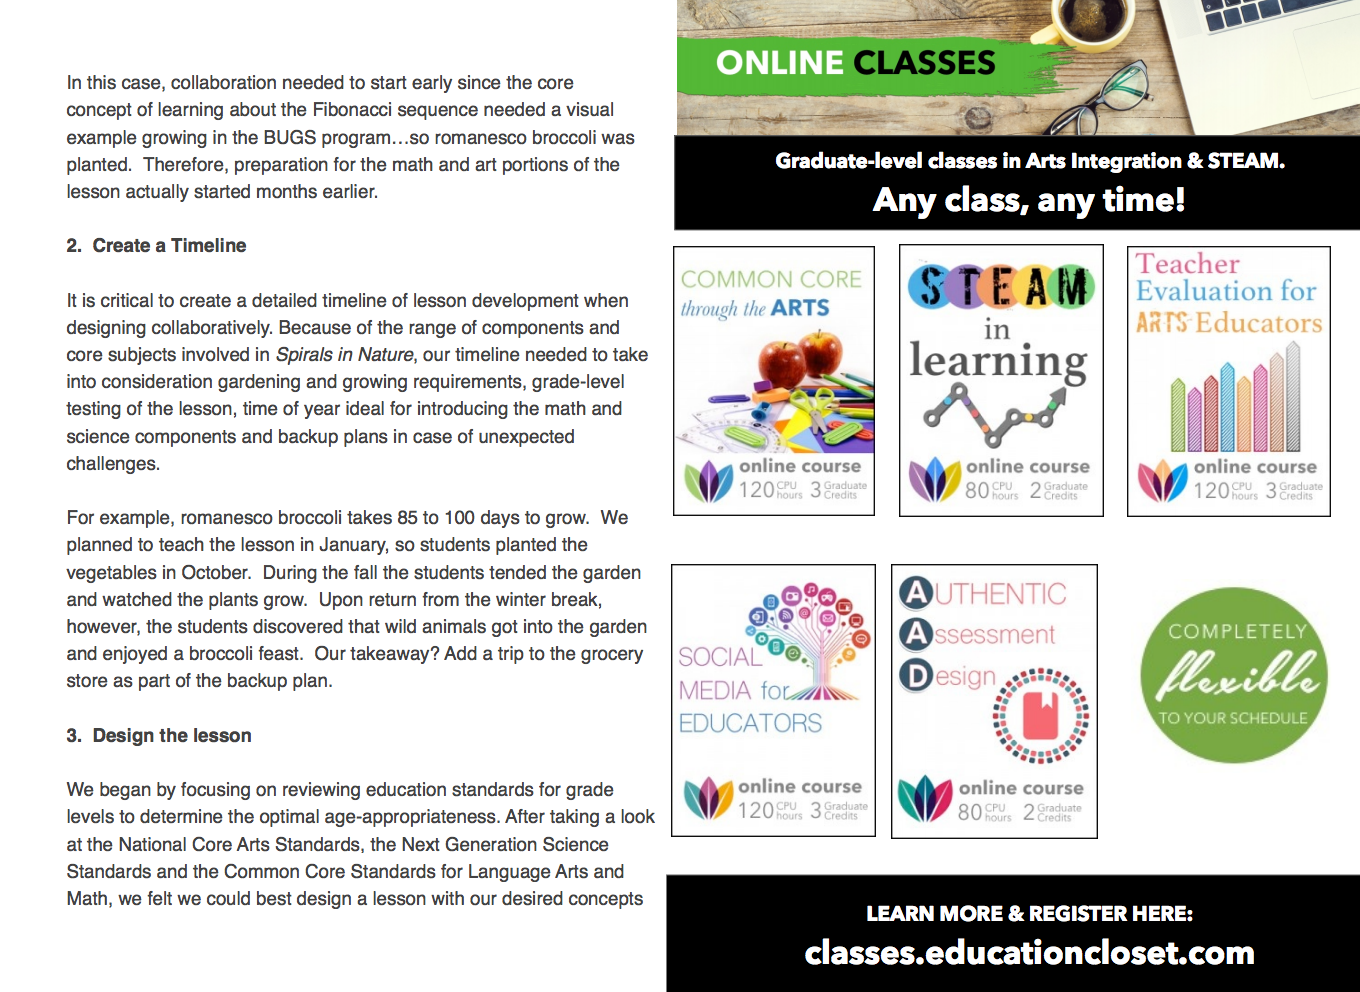 STEAM ON! Designing Art Lessons that Integrate with Core Curriculum